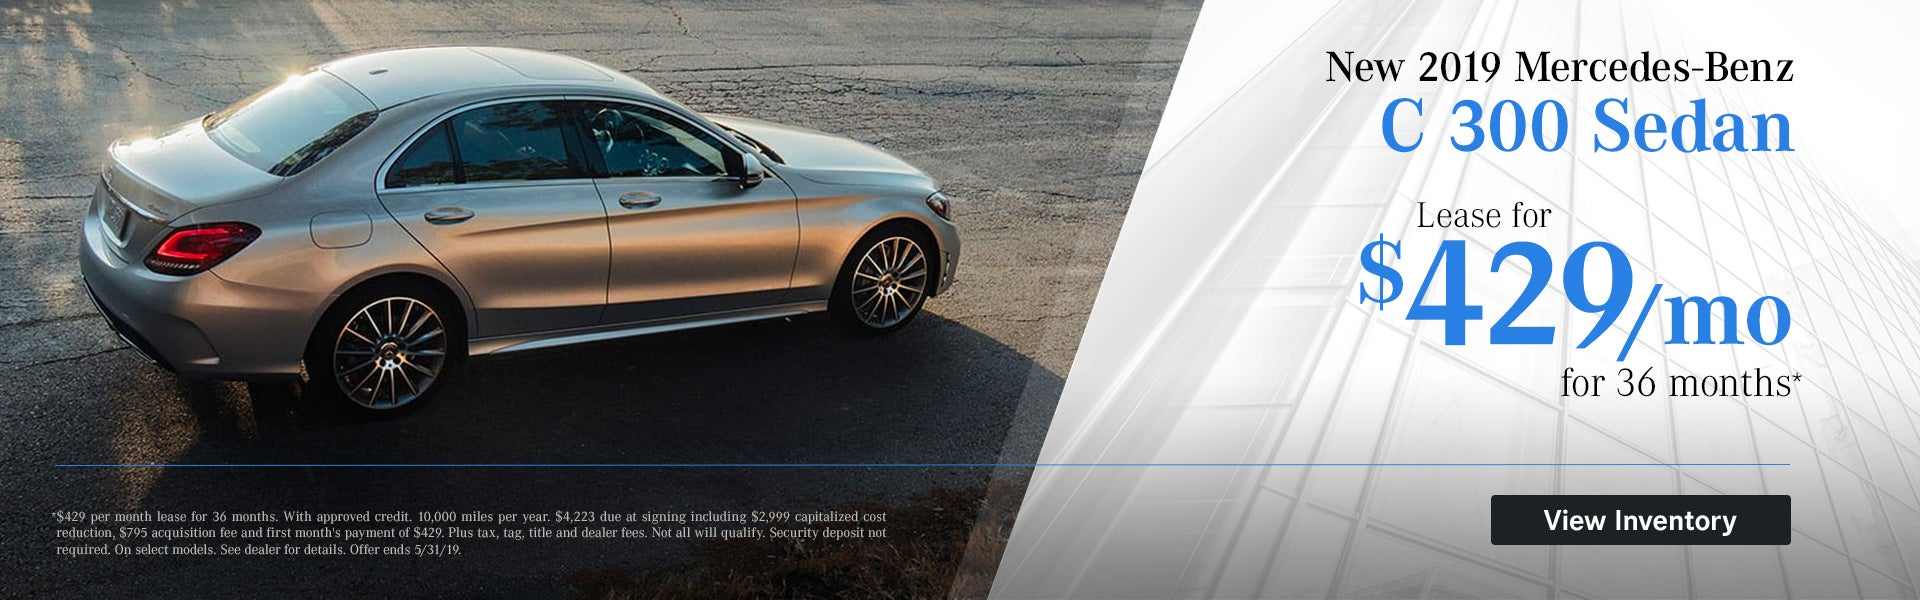 Greenville Sc Mercedes Benz Dealer Serving Spartanburg Anderson